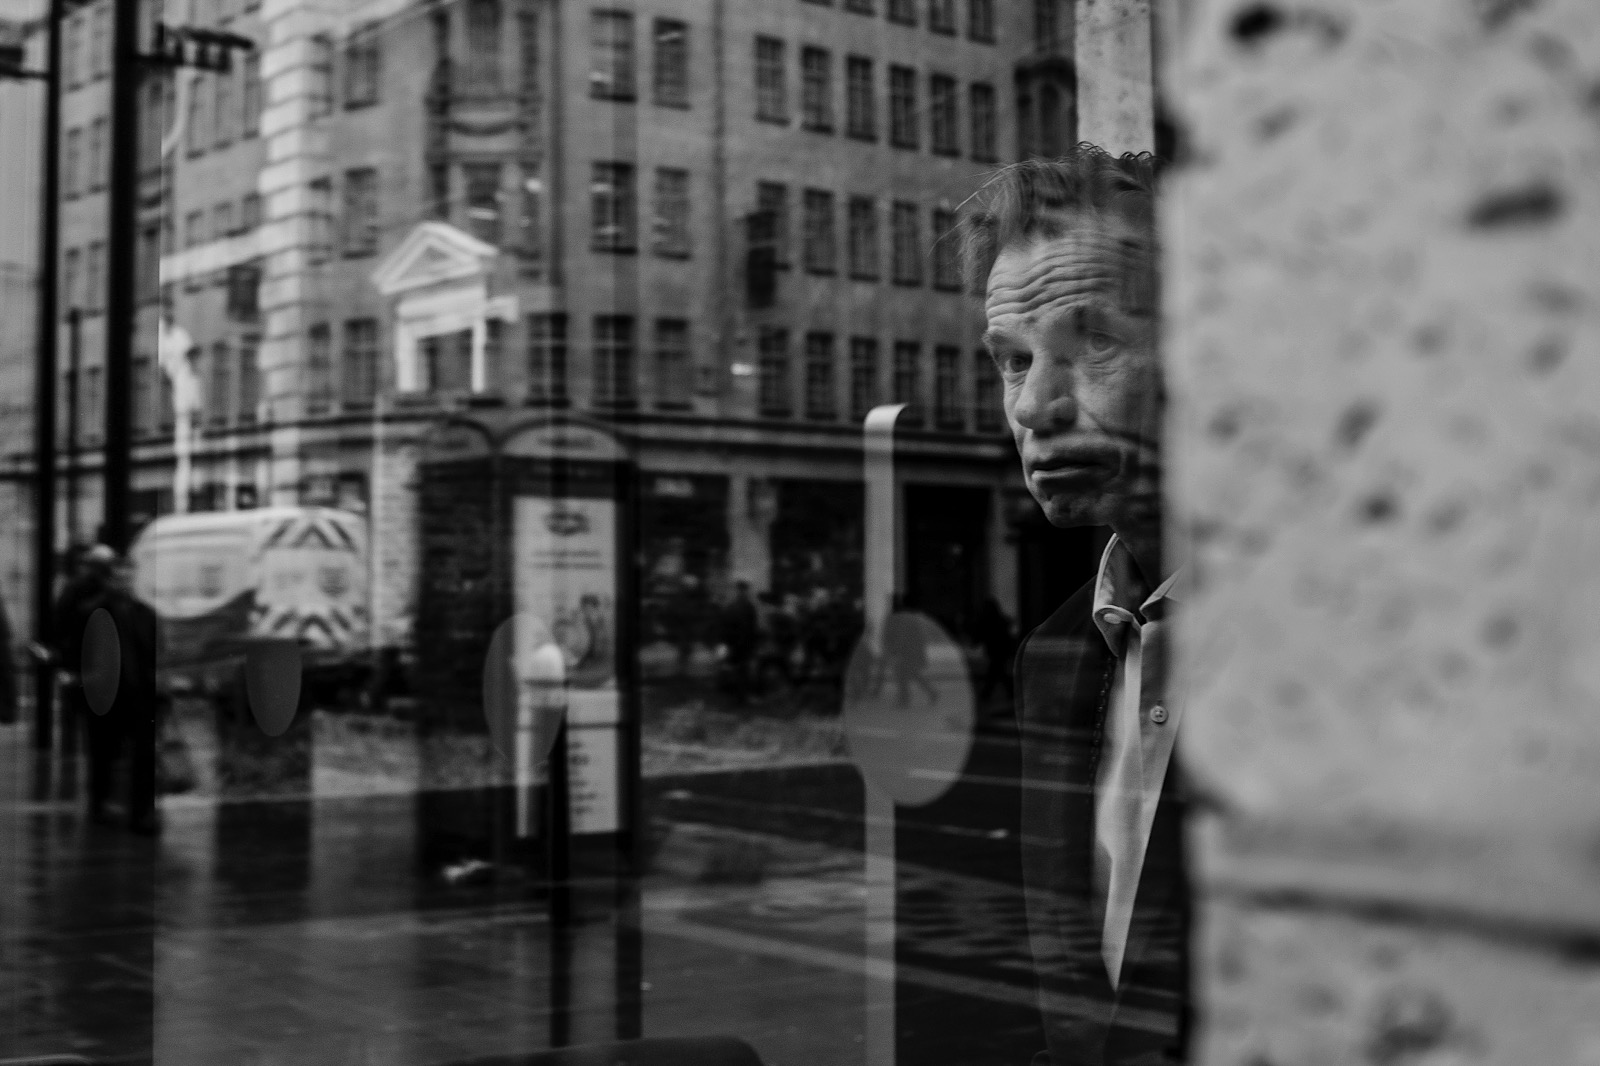 Film Noir Style photo of a man looking through the window with various reflections obscuring him.